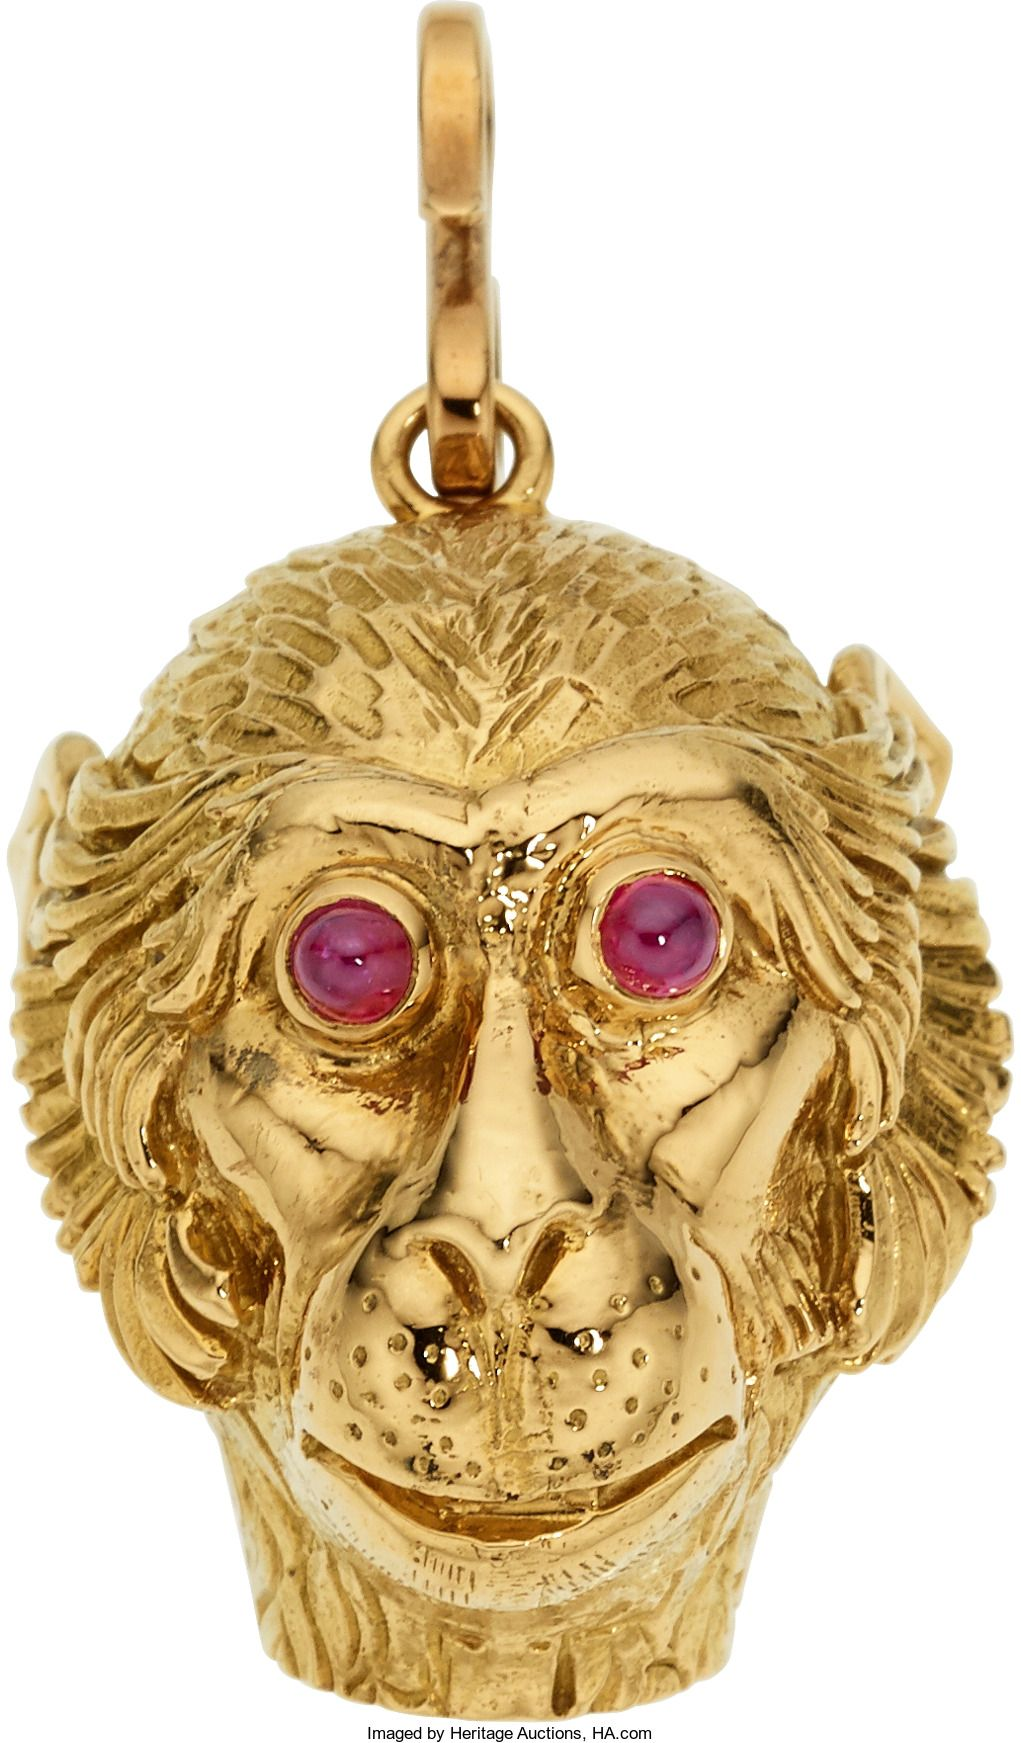 The monkey zipper pull features ruby cabochons, set in 18k gold, marked Webb. Gross weight 30.20 grams. Dimensions: 1-5/8 inches x 7/8 inch Estimate: $4,000 - $6,000.